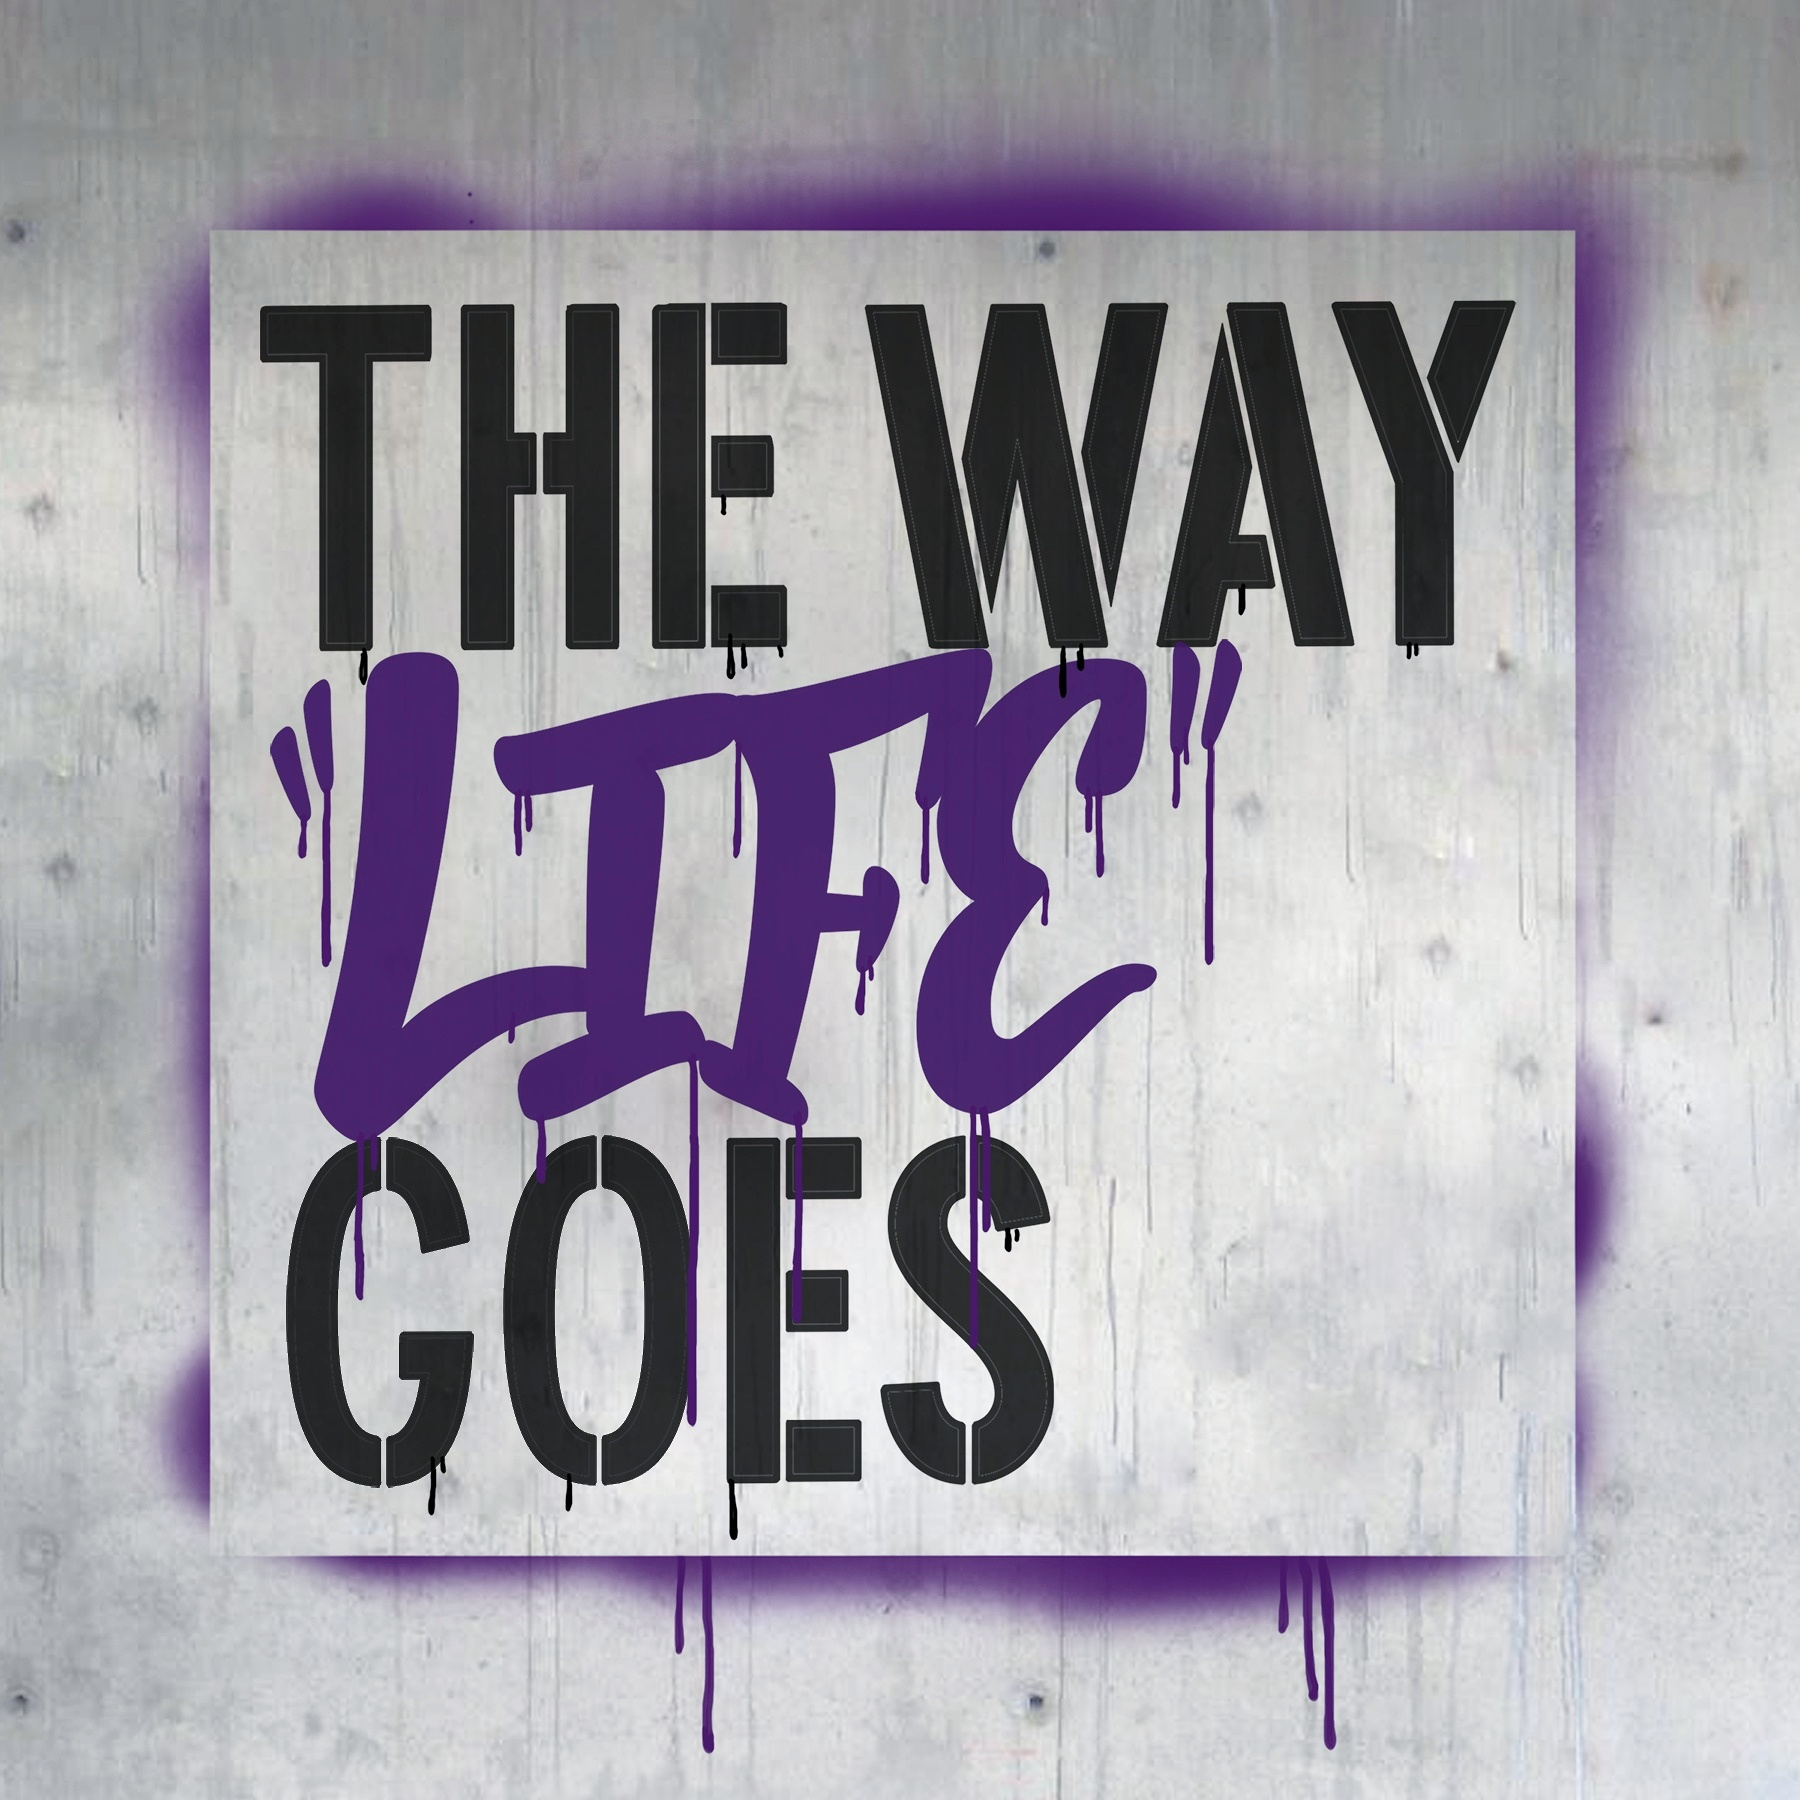 """The Way Life Goes - Lil Uzi Vert   This week's #NewMusicMonday pick is a heartfelt track called """"The Way Life Goes"""" by Lil Uzi Vert. Uzi is an American Hip Hop..."""